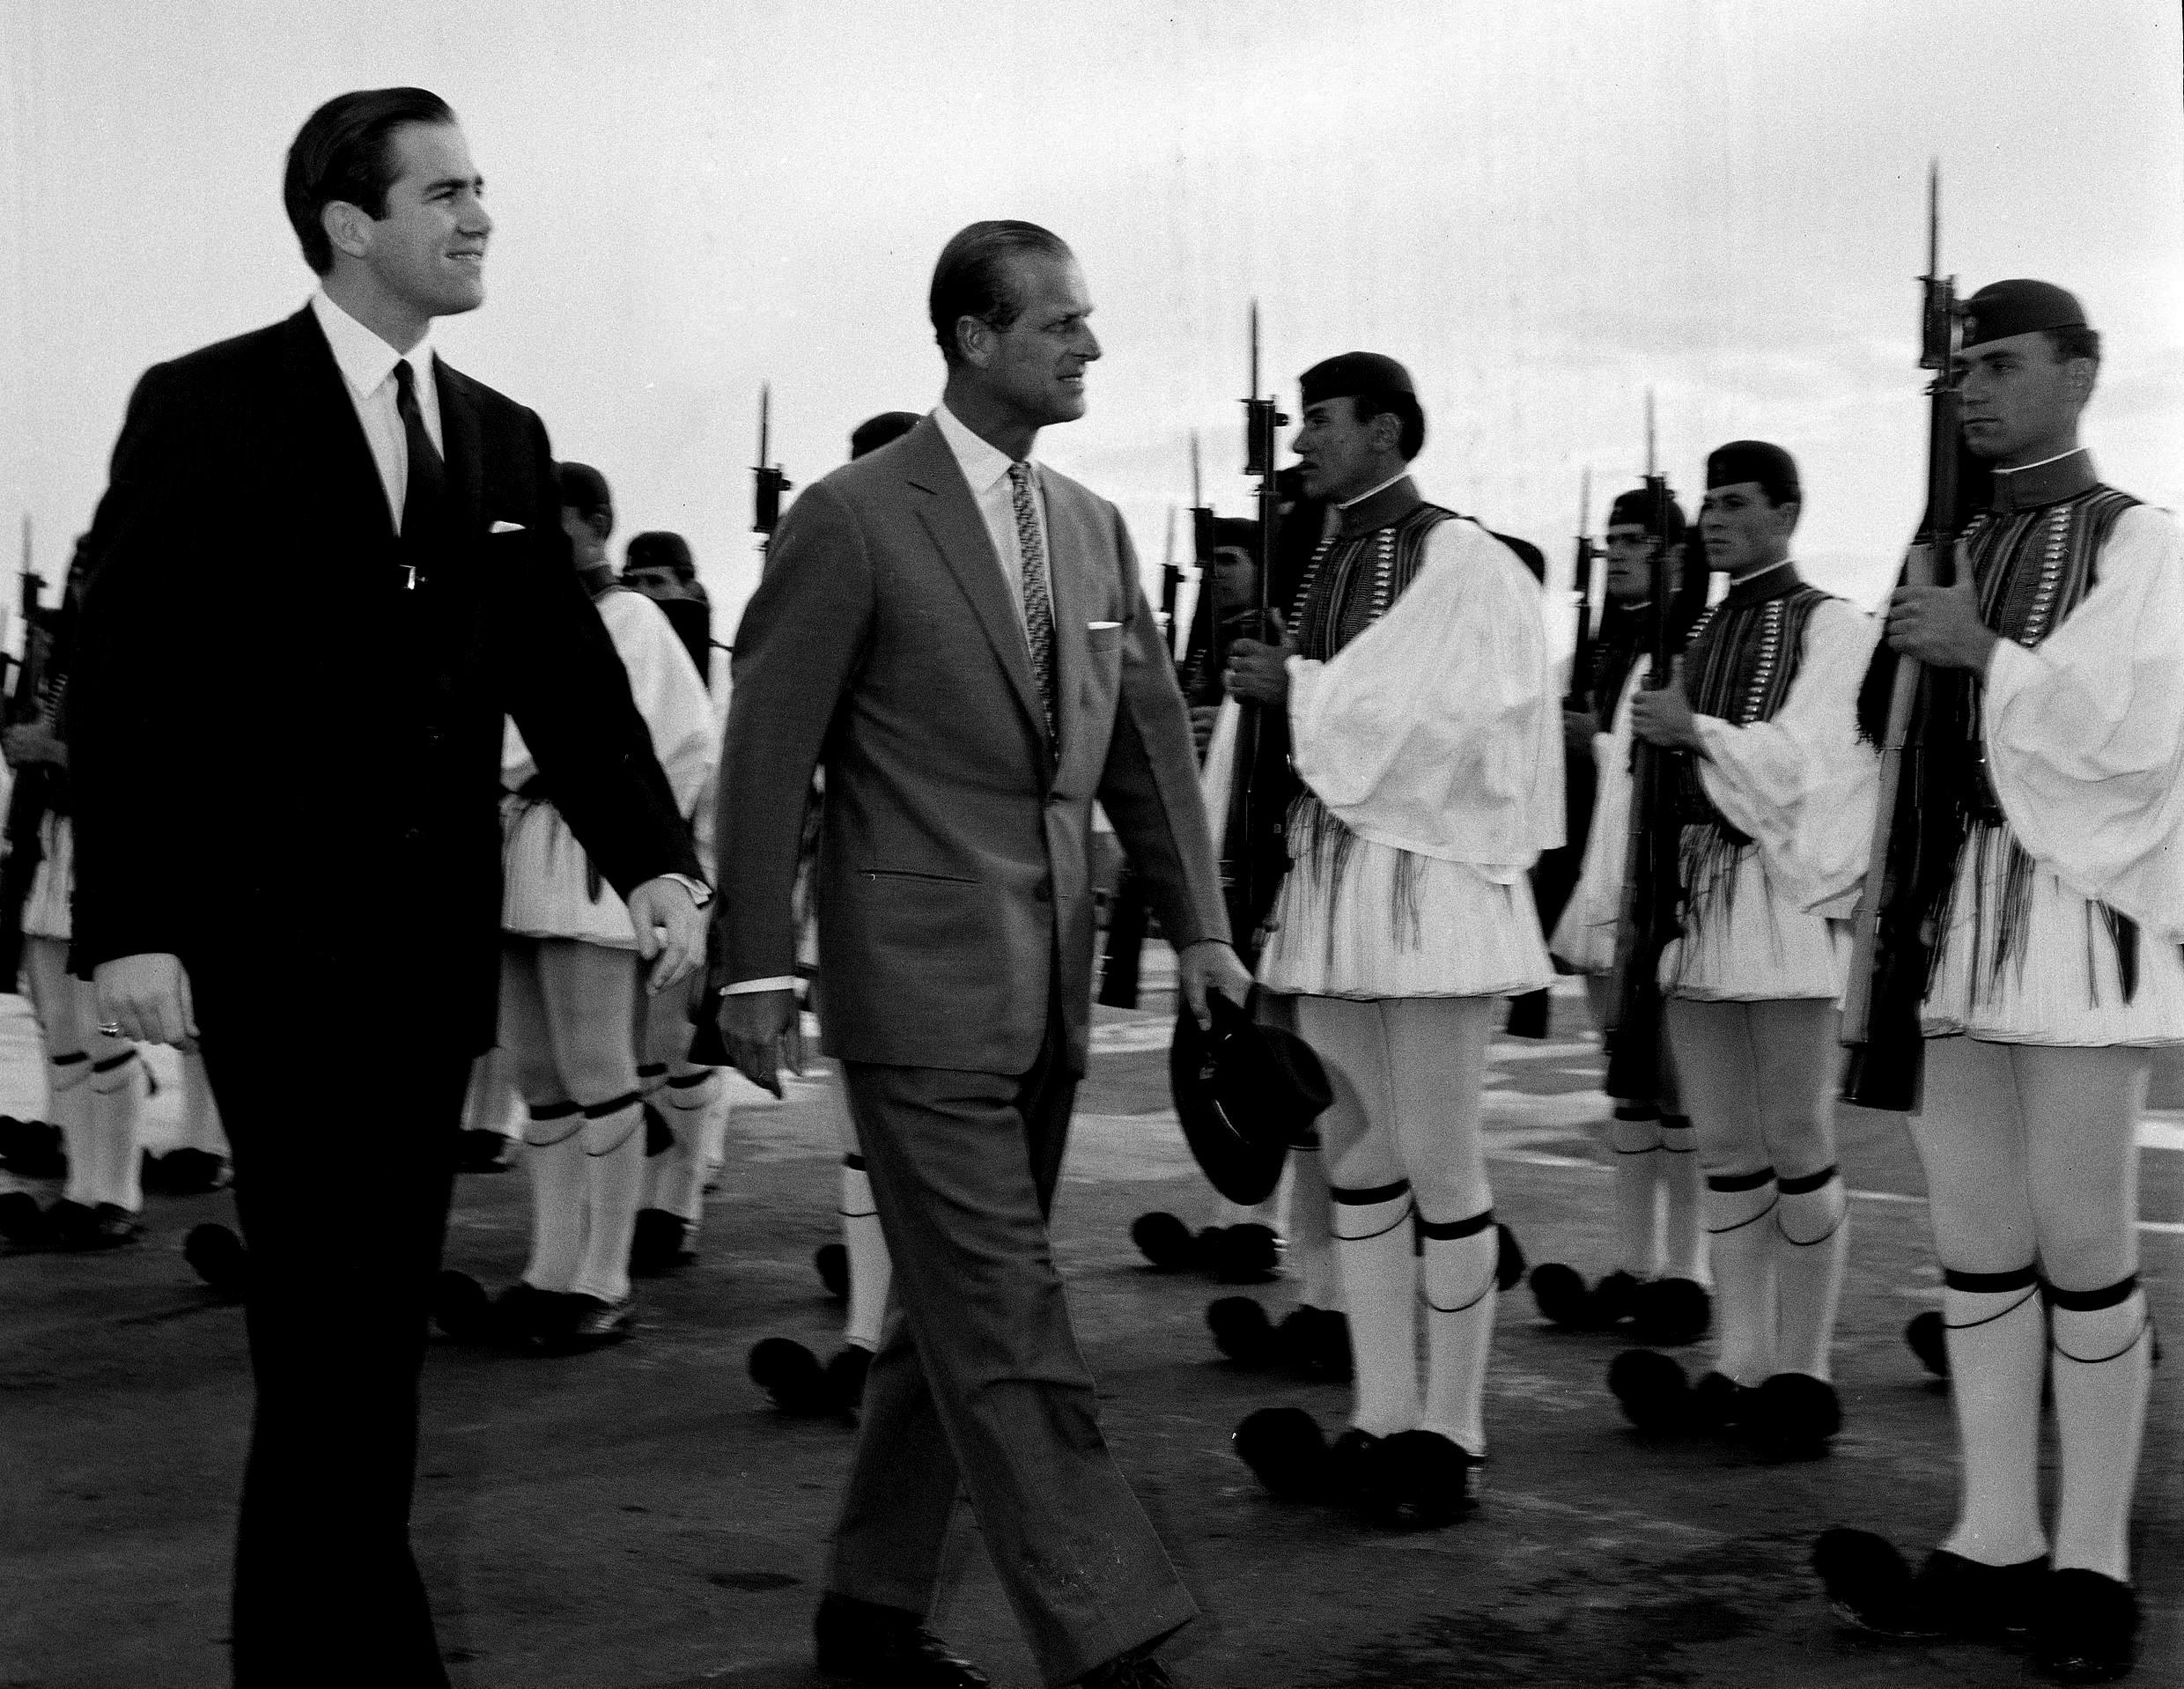 In this March 25, 1965 file photo, King Constantine II of Greece, left, and Prince Philip of Britain review an honour guard of the Greek Royal Evzones Guard as the prince arrives at the Athens Airport for a brief visit as the guest of the Greek royal family.